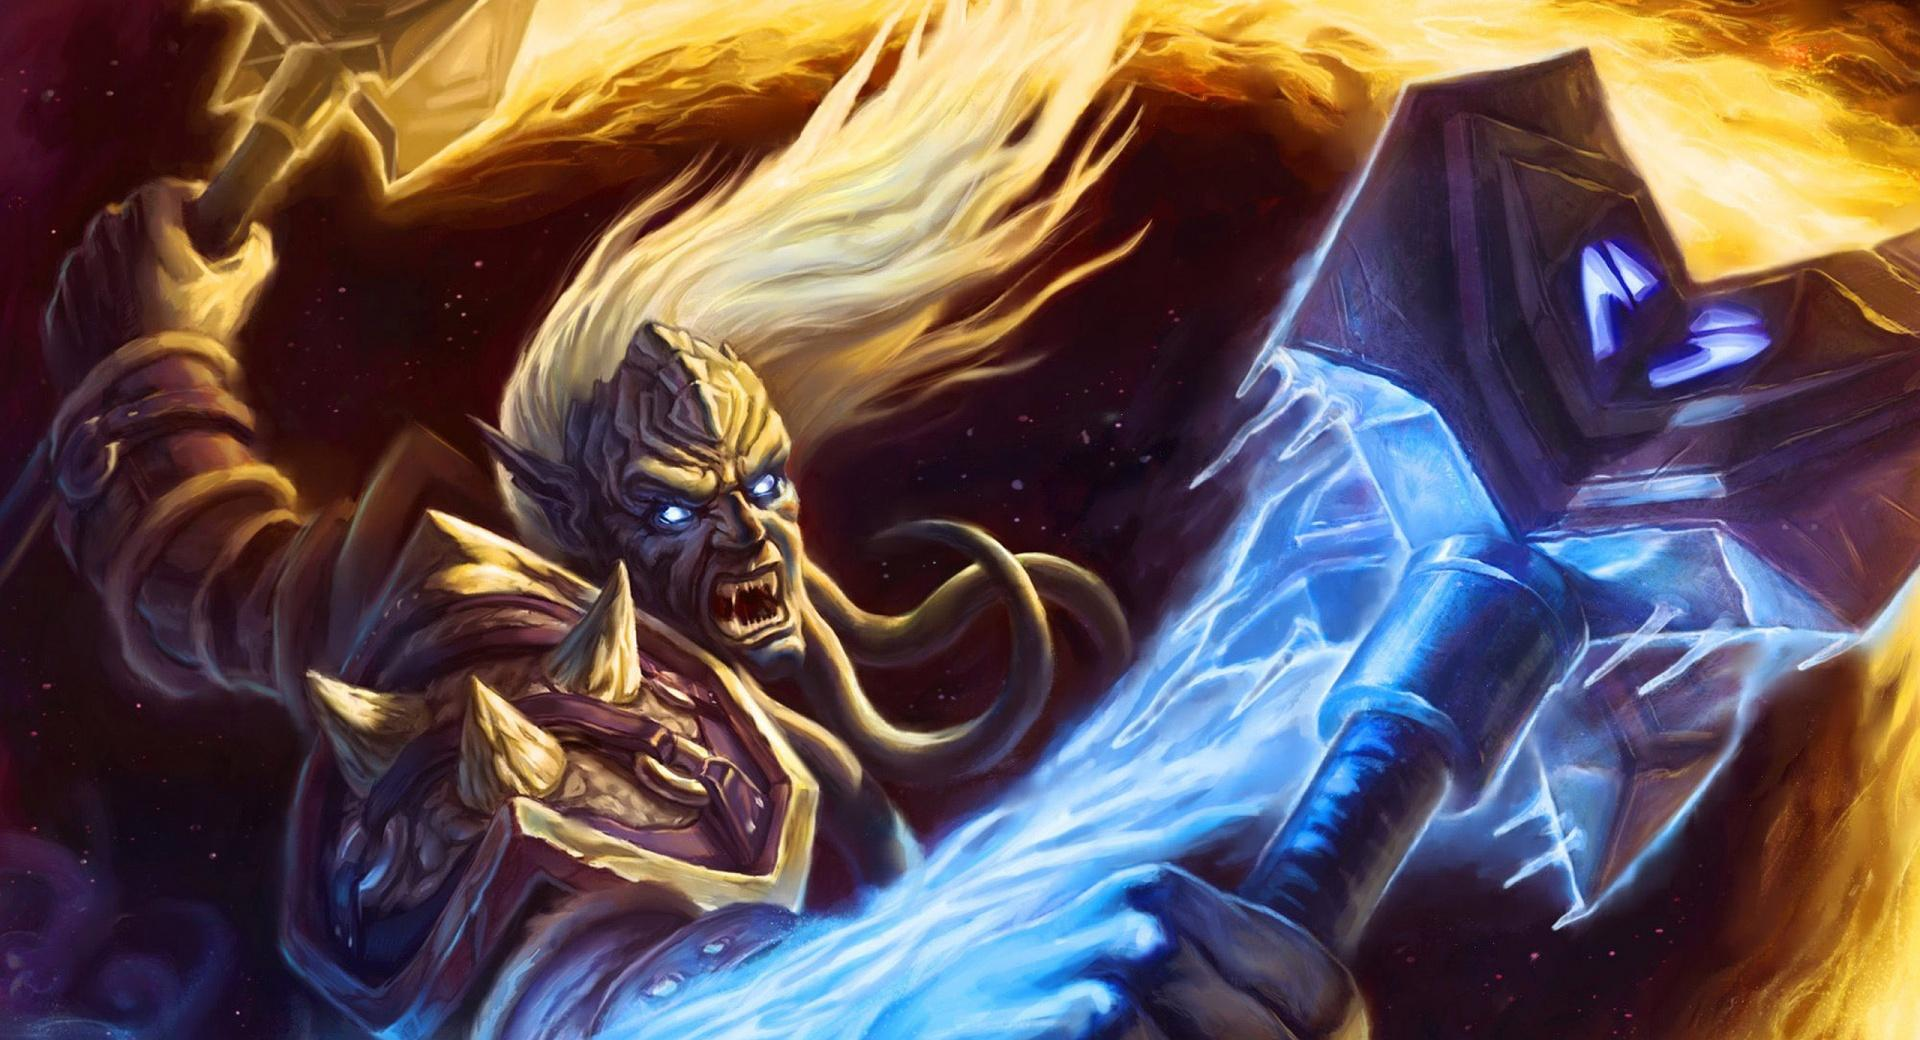 World Of Warcraft Artwork wallpapers HD quality